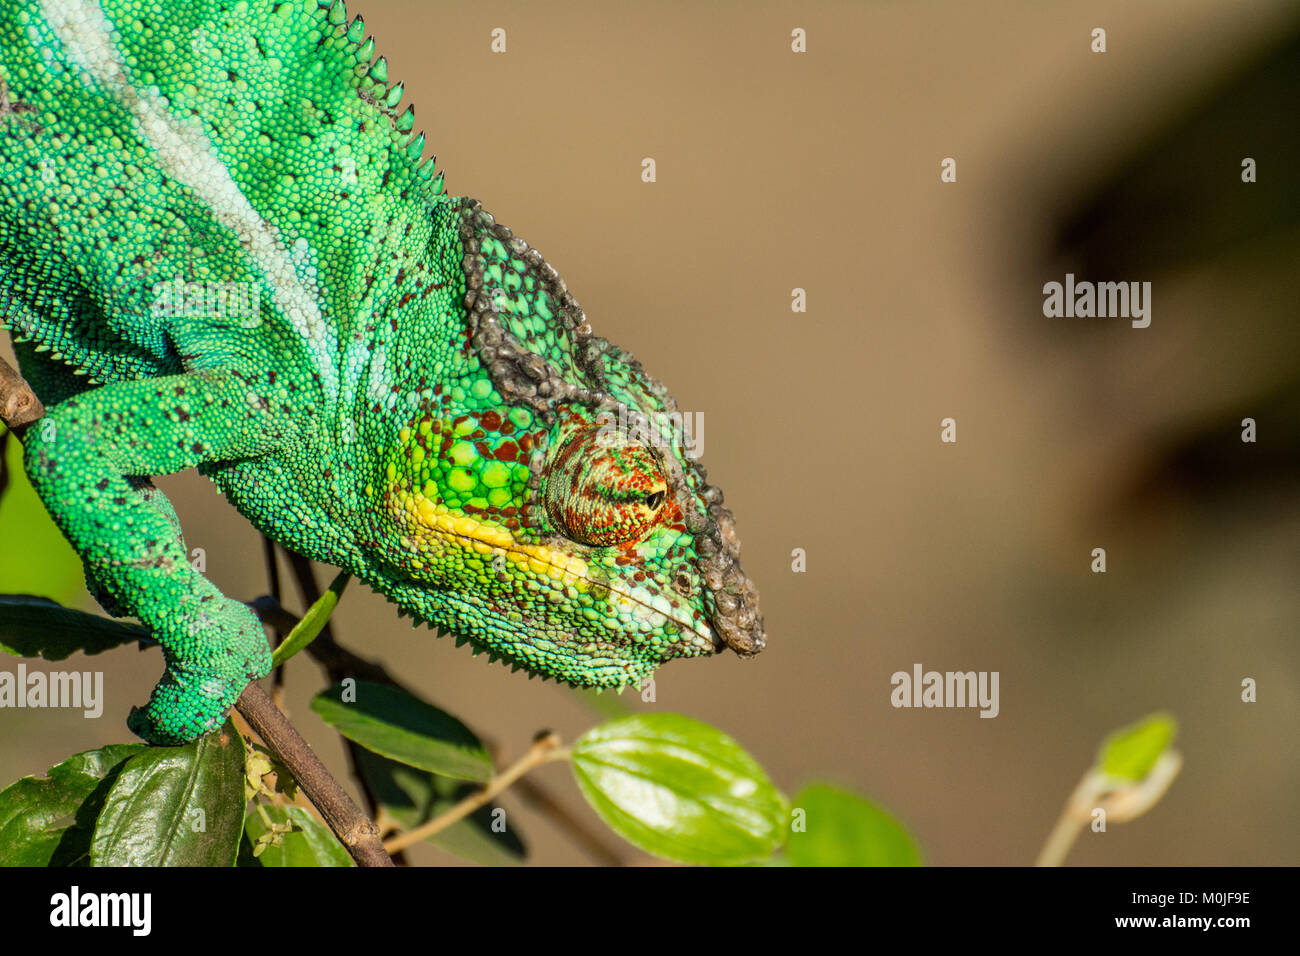 Endemic chameleon looking for a quarry in Madagascar - Stock Image